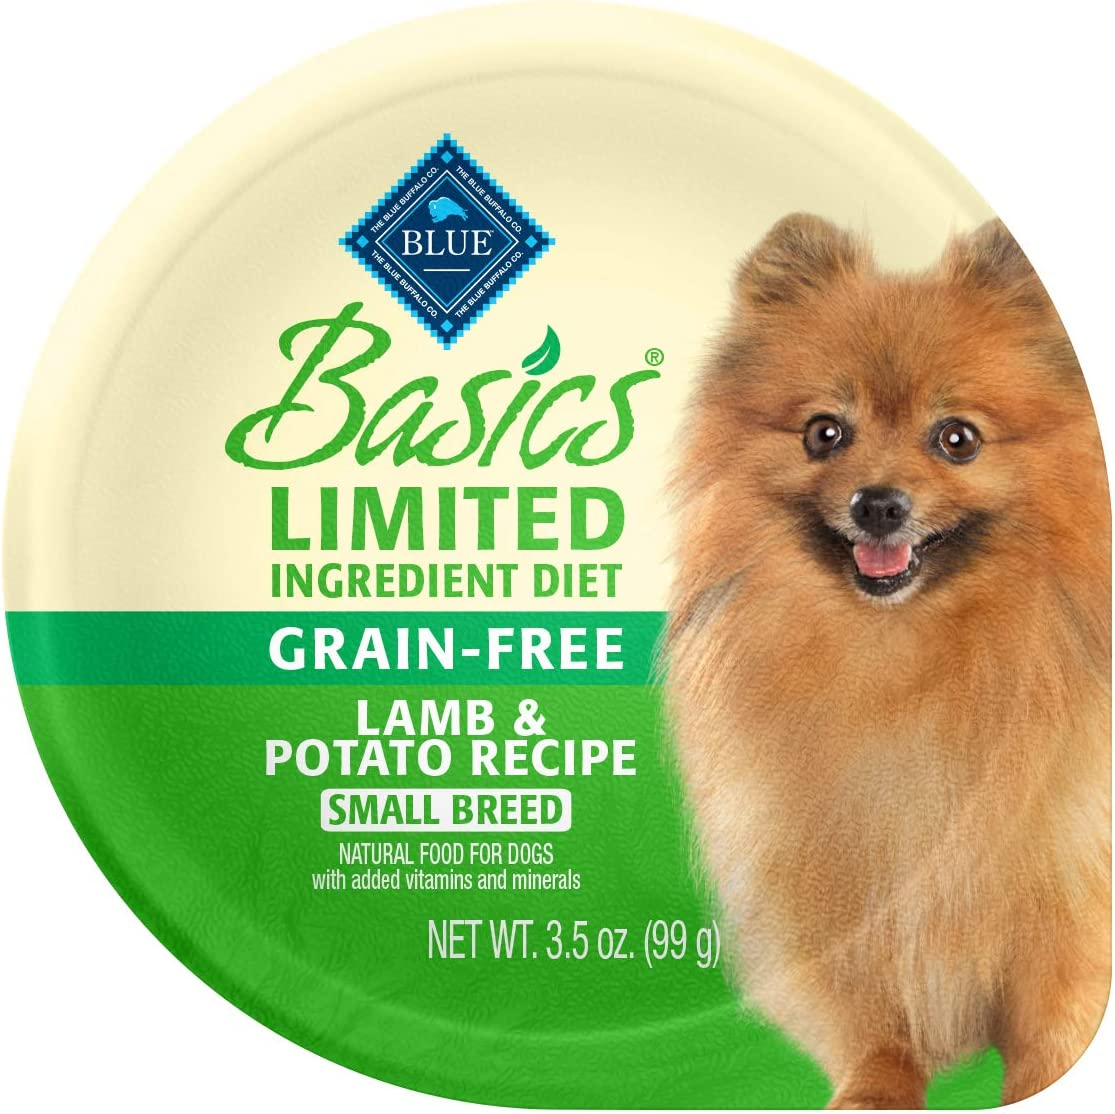 Blue Buffalo Basics Limited Ingredient Diet Adult Small Breed Grain-Free Lamb & Potato Wet Dog Food 3-oz (Pack of 12)